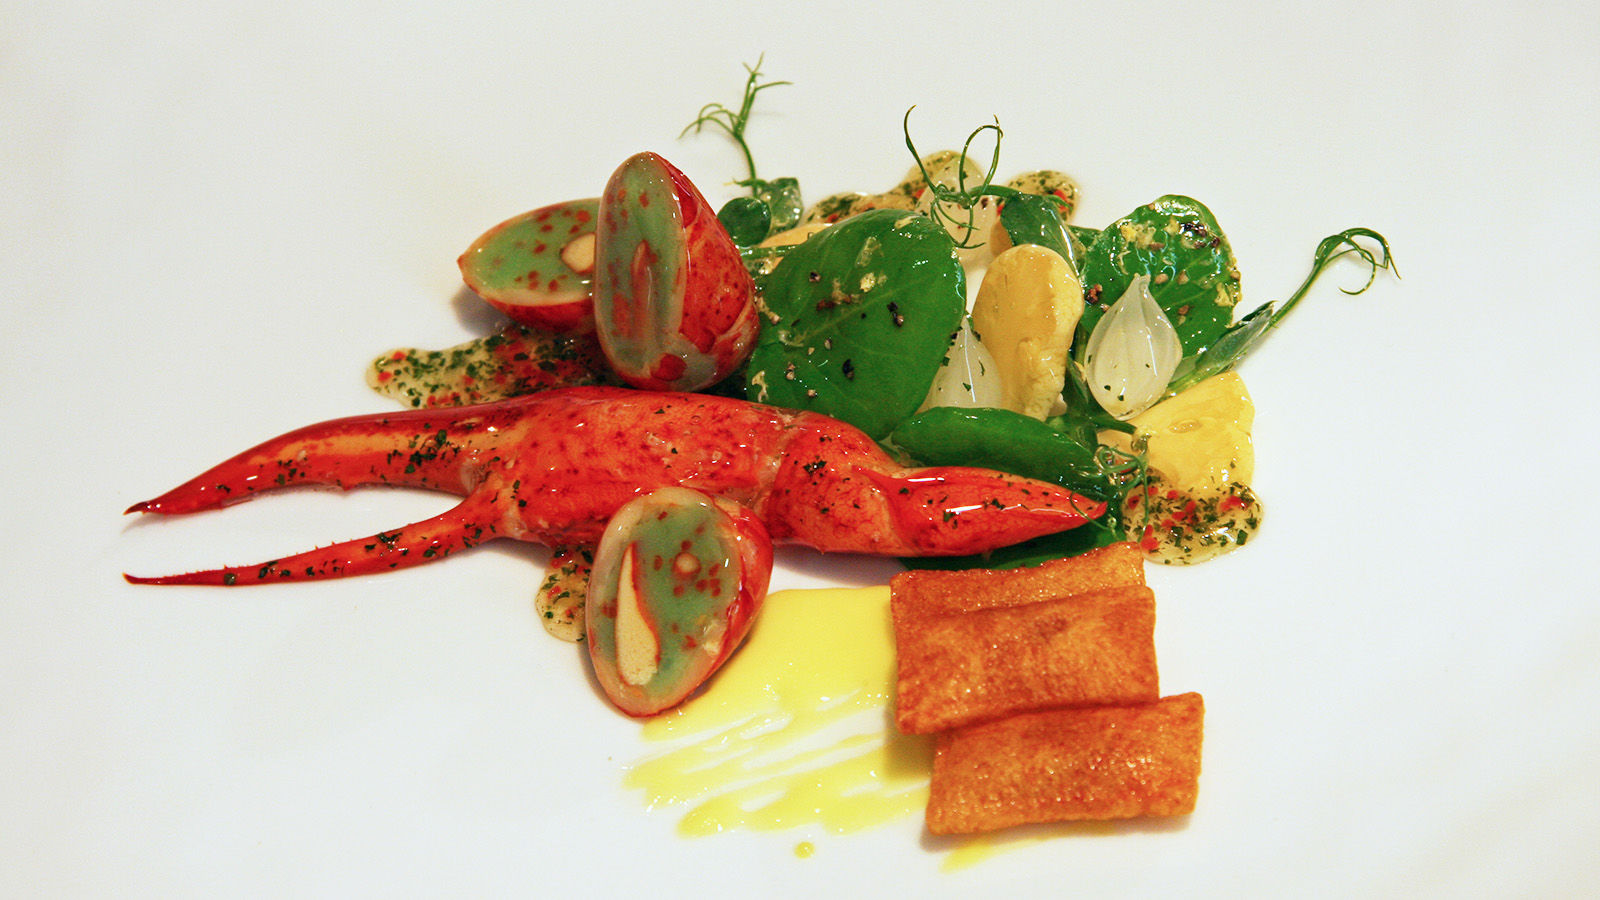 Gold Medal - 2010 Luxembourge ExpoGast- Culinary Team Canada - Chef Brad Horen